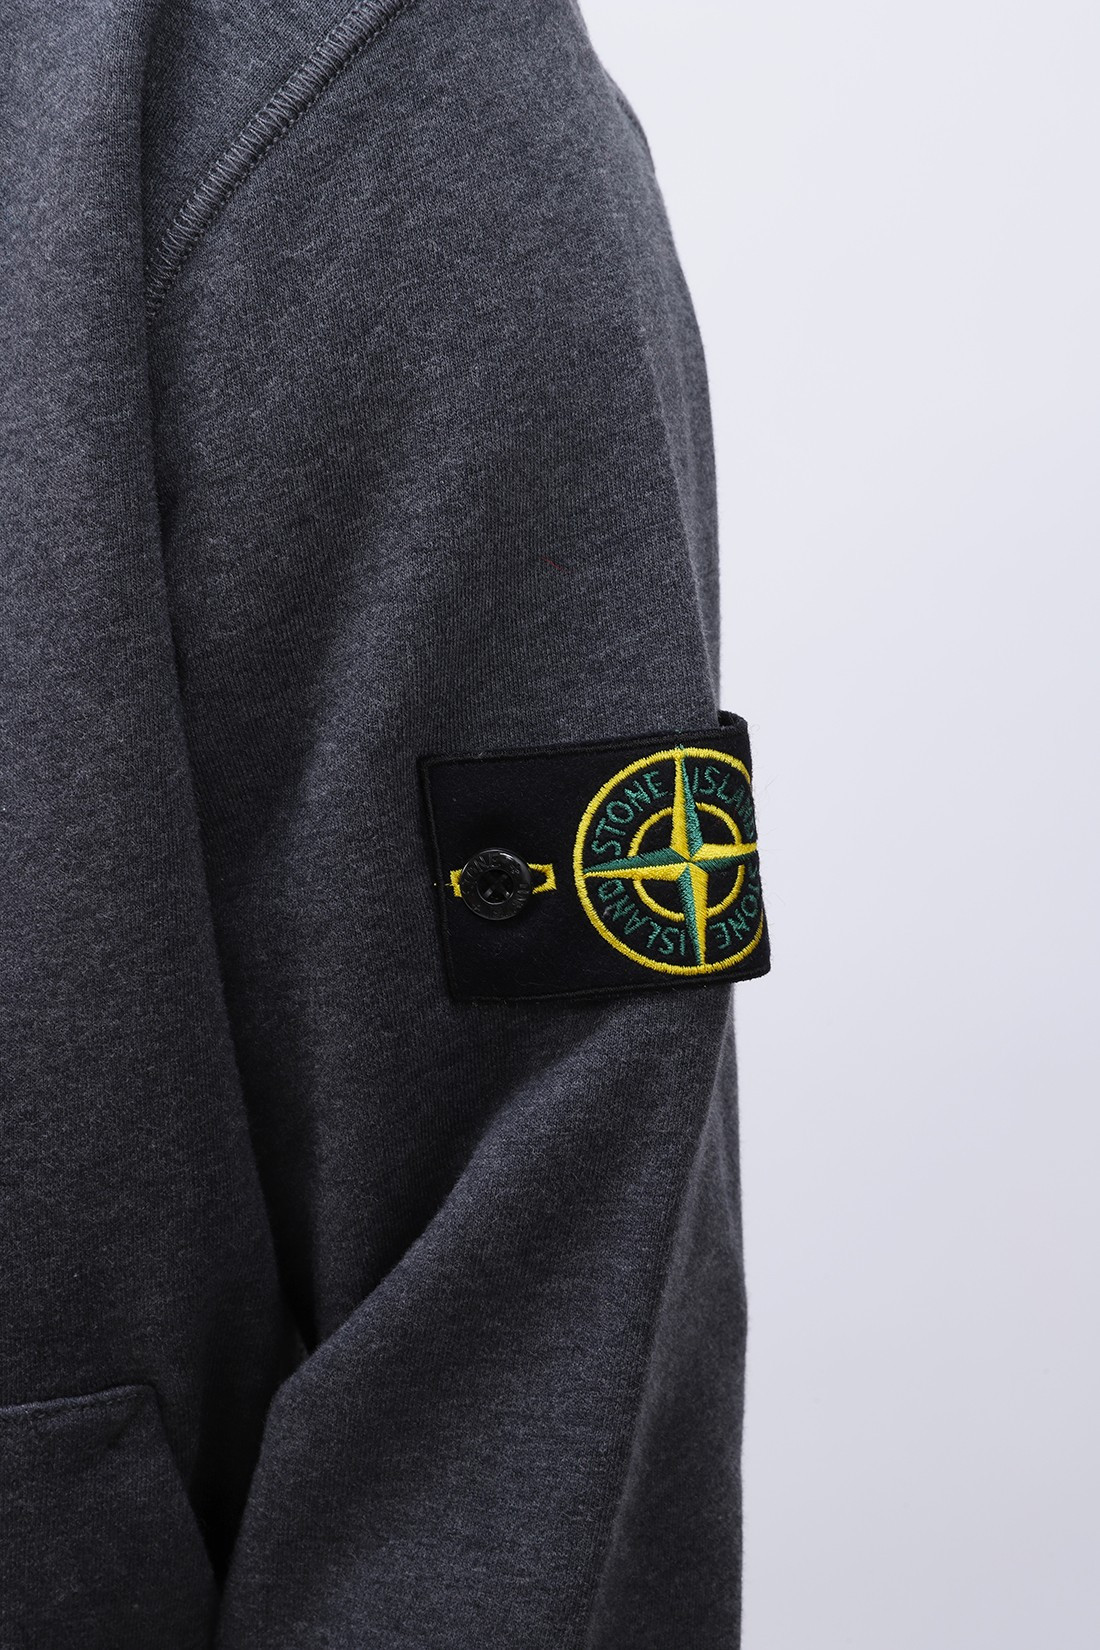 STONE ISLAND / 64251 hooded zip sweater v0m67 Fumo melange